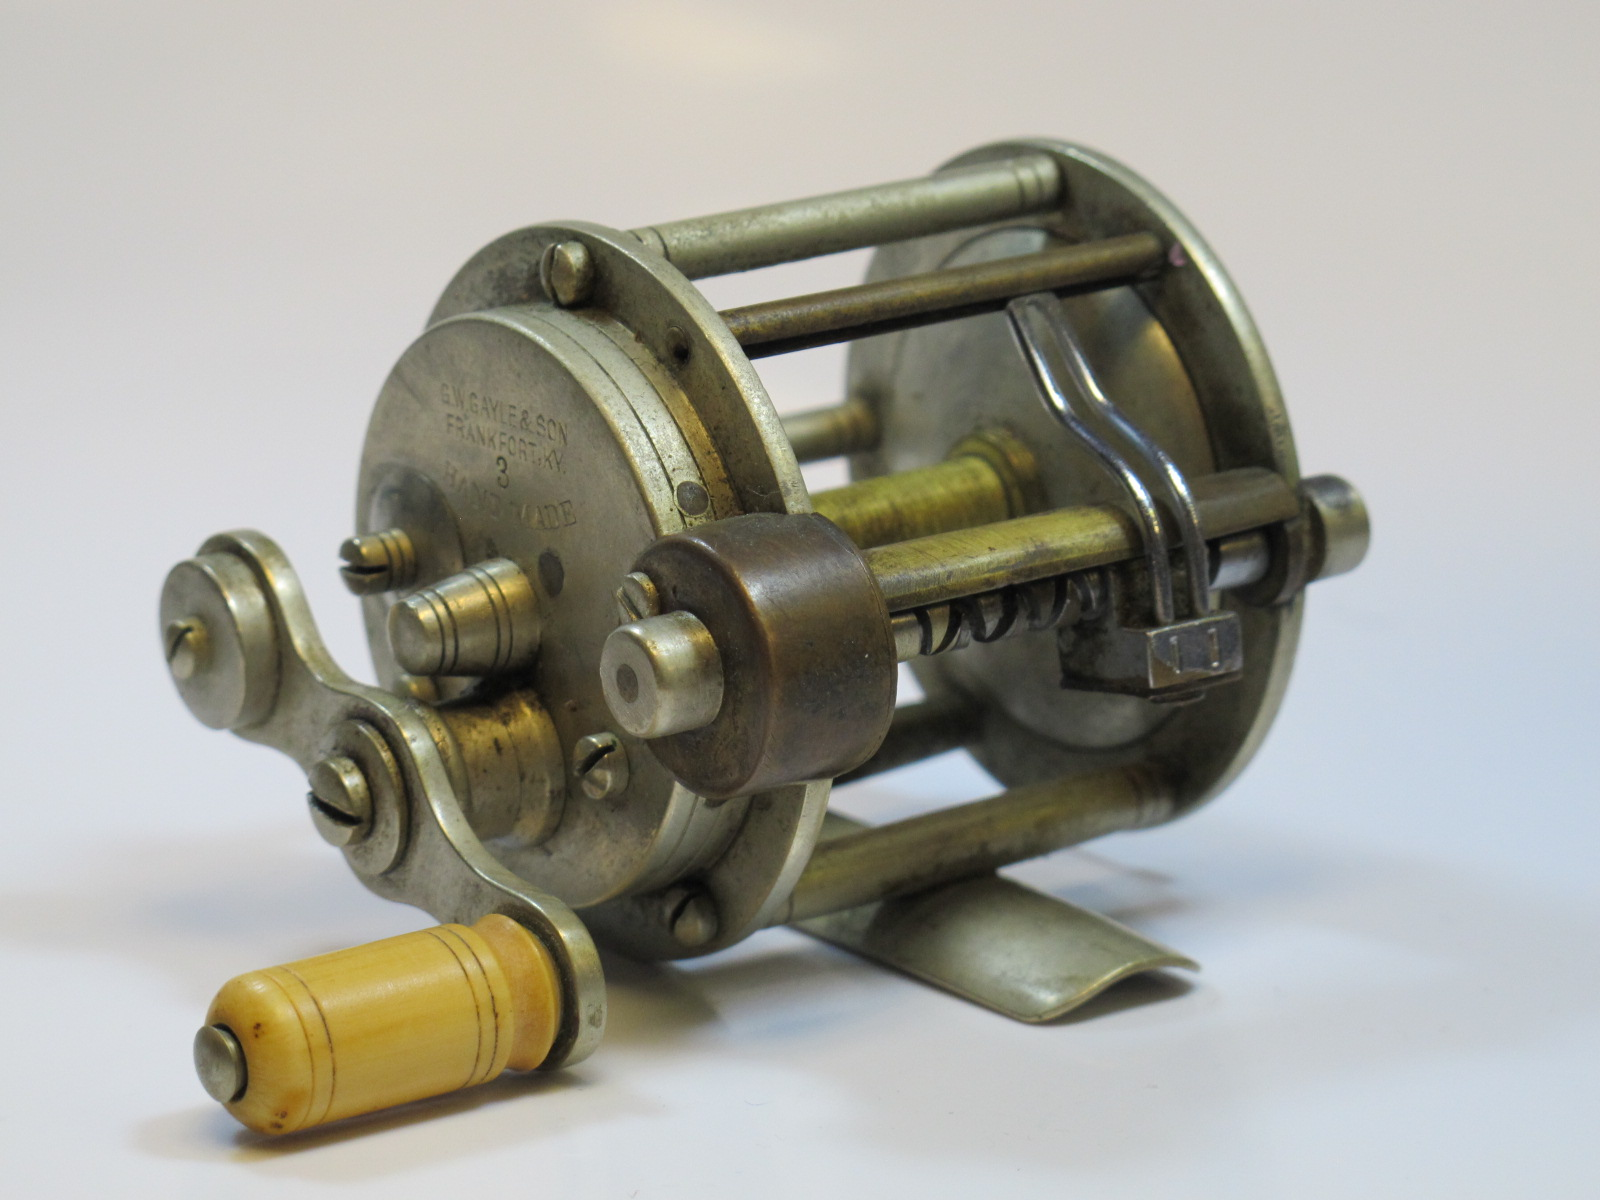 Antique fishing reels for sale for Antique fishing reels